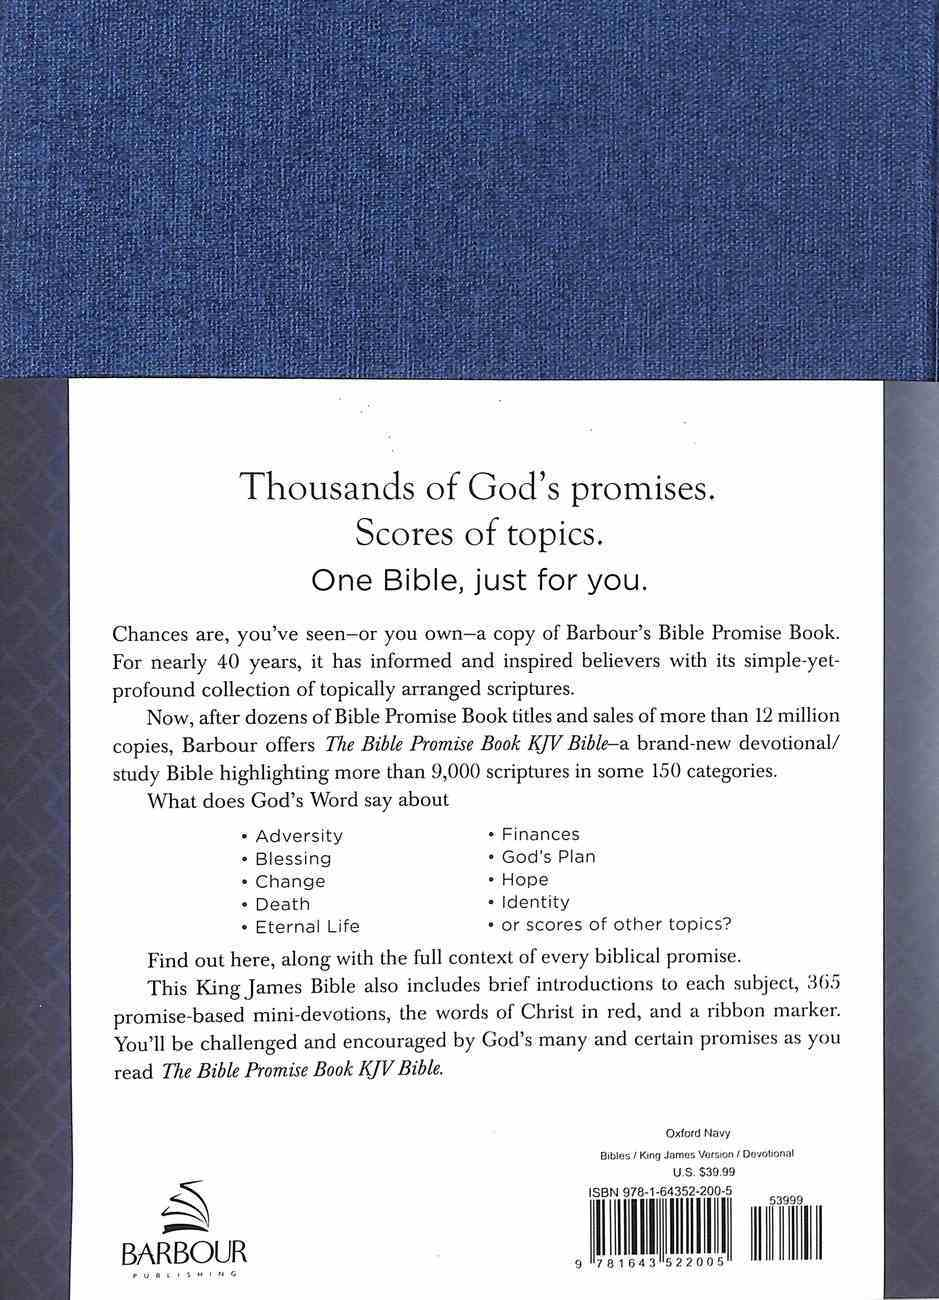 KJV Bible Promise Book Devotional Study Bible Oxford Navy (Red Letter Edition) Hardback